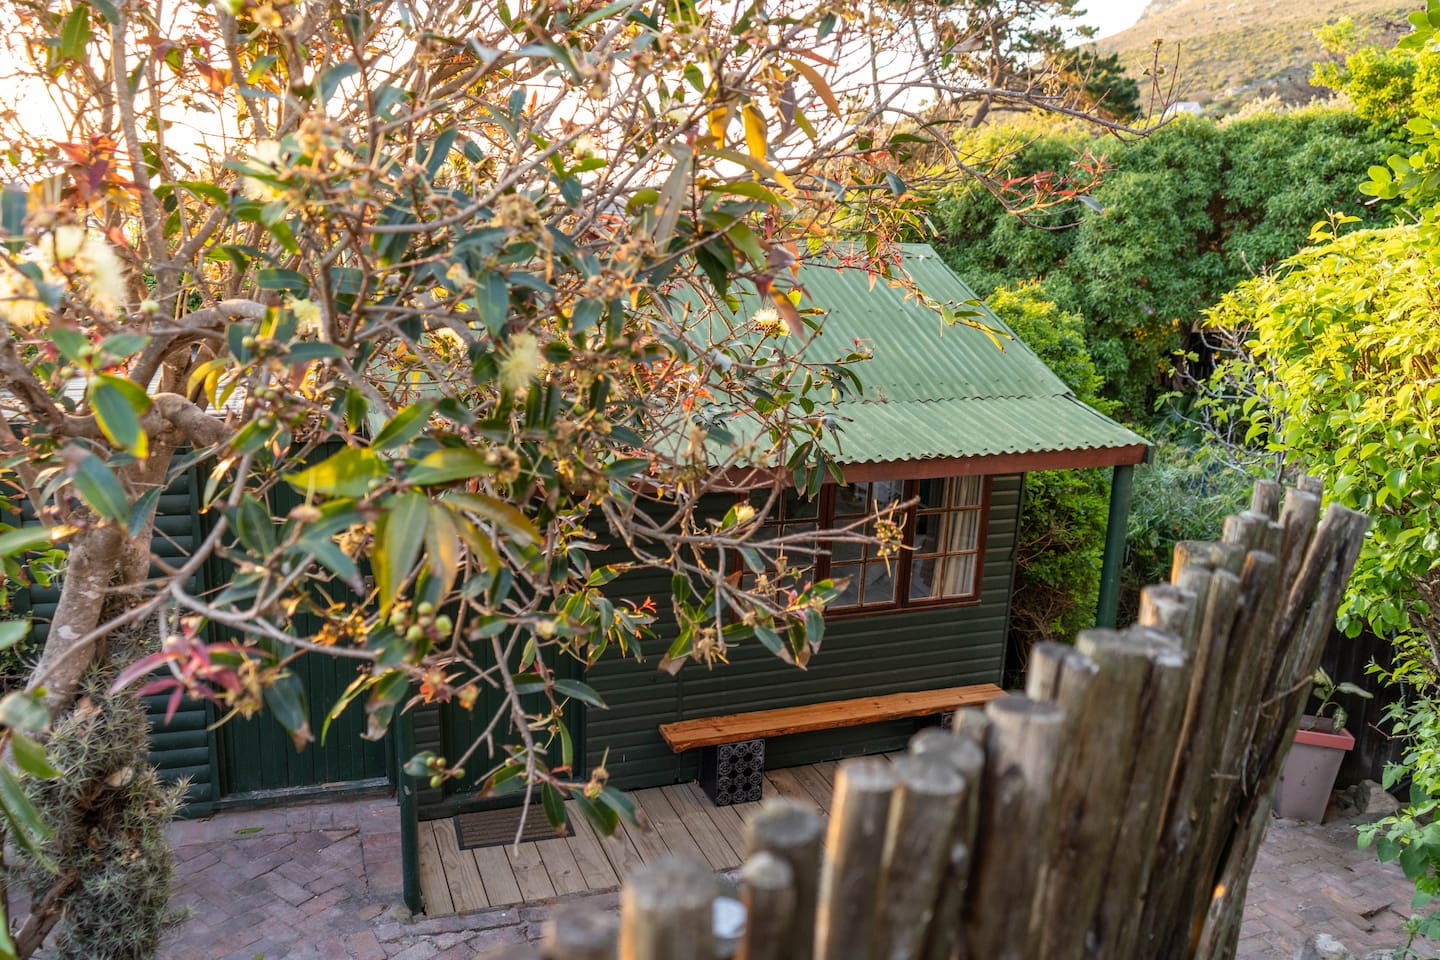 Quaint cottage surrounded by nature a stones throw away from the beach.